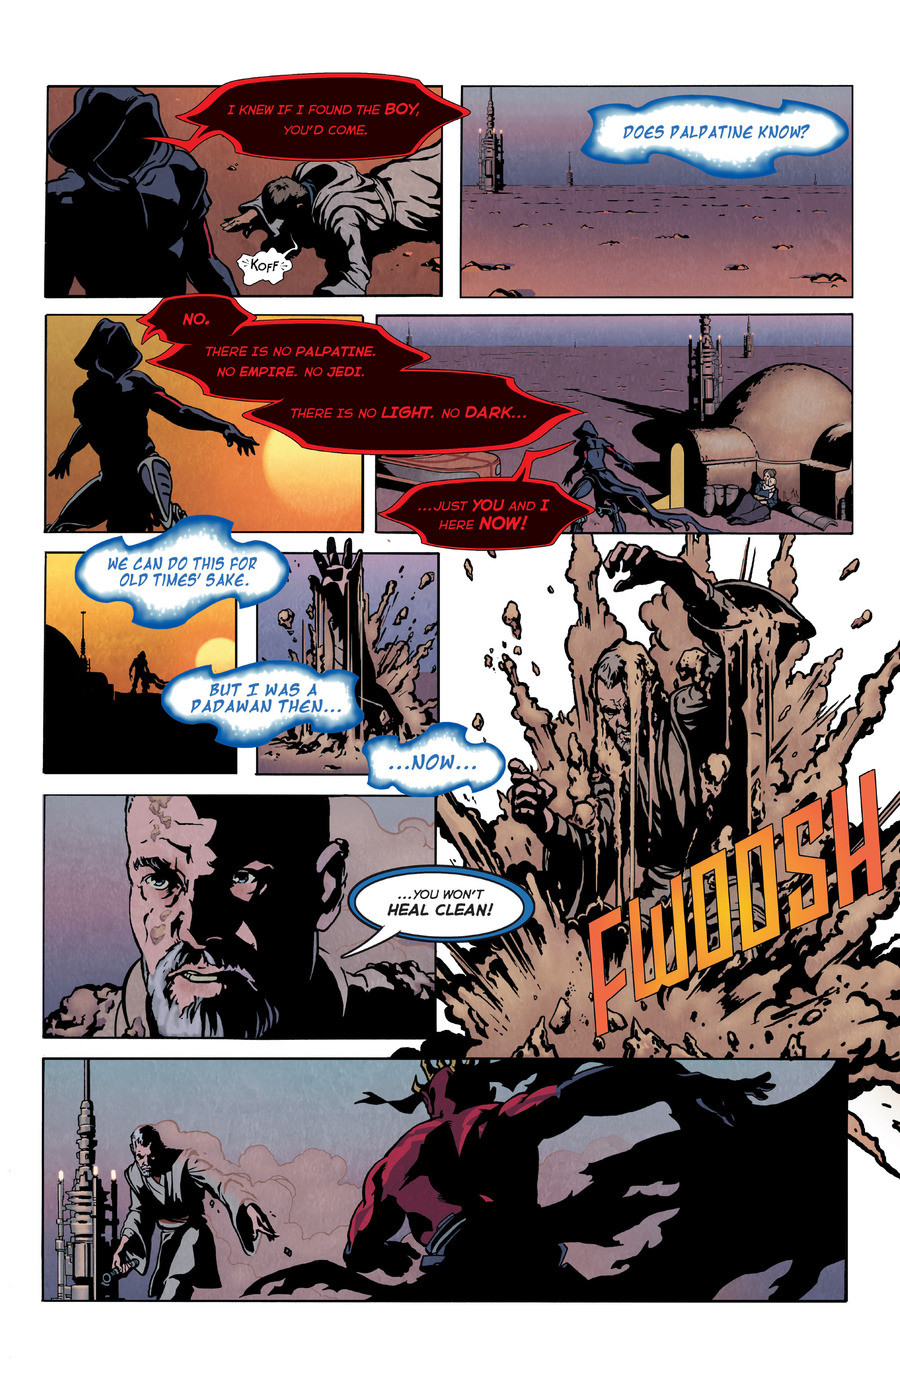 Old Wounds. Source is Star Wars Visionaries. join list: StarWars (4 subs)Mention History .. Is this cannon? If so, it would be pretty anti-climatic for someone like maul to just die after like 5 pages of a comic. Pretty sure this comic was made specifi